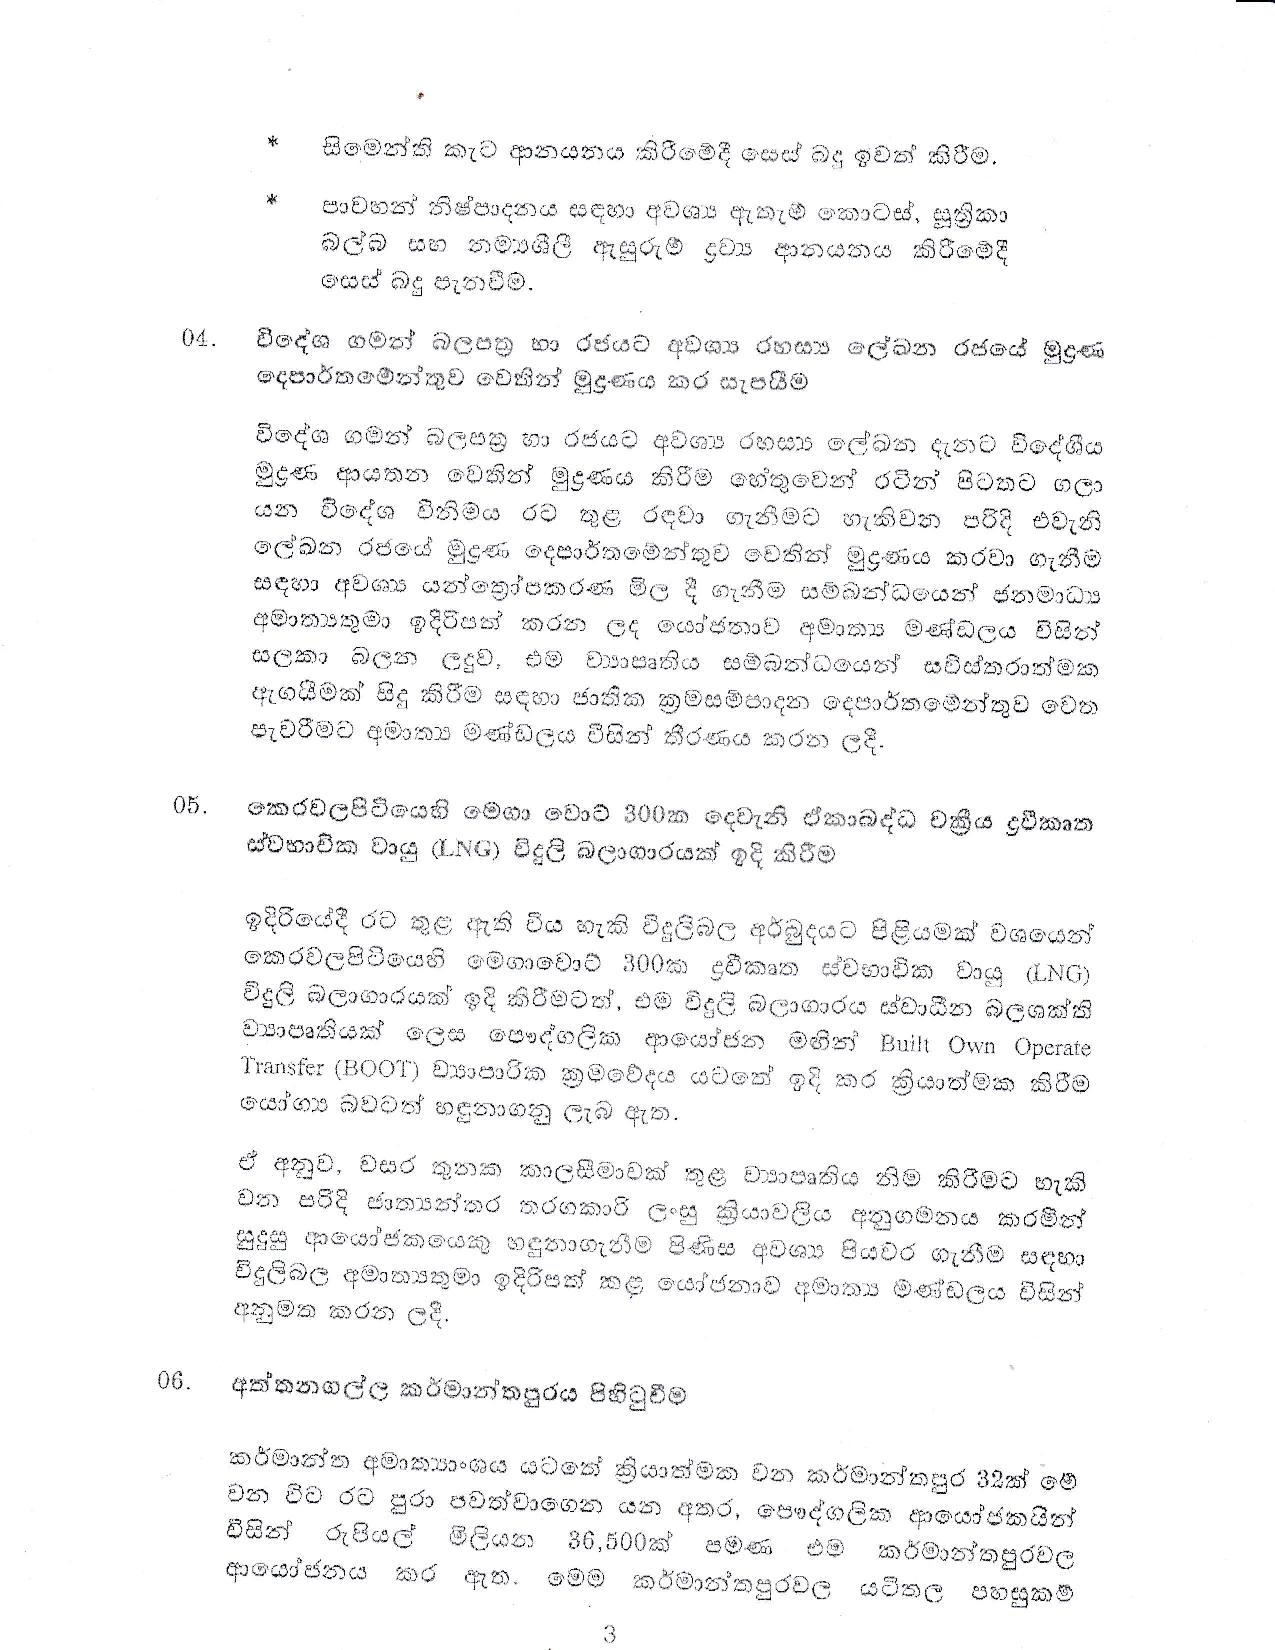 Cabinet Decision on 16.09.2020 page 003